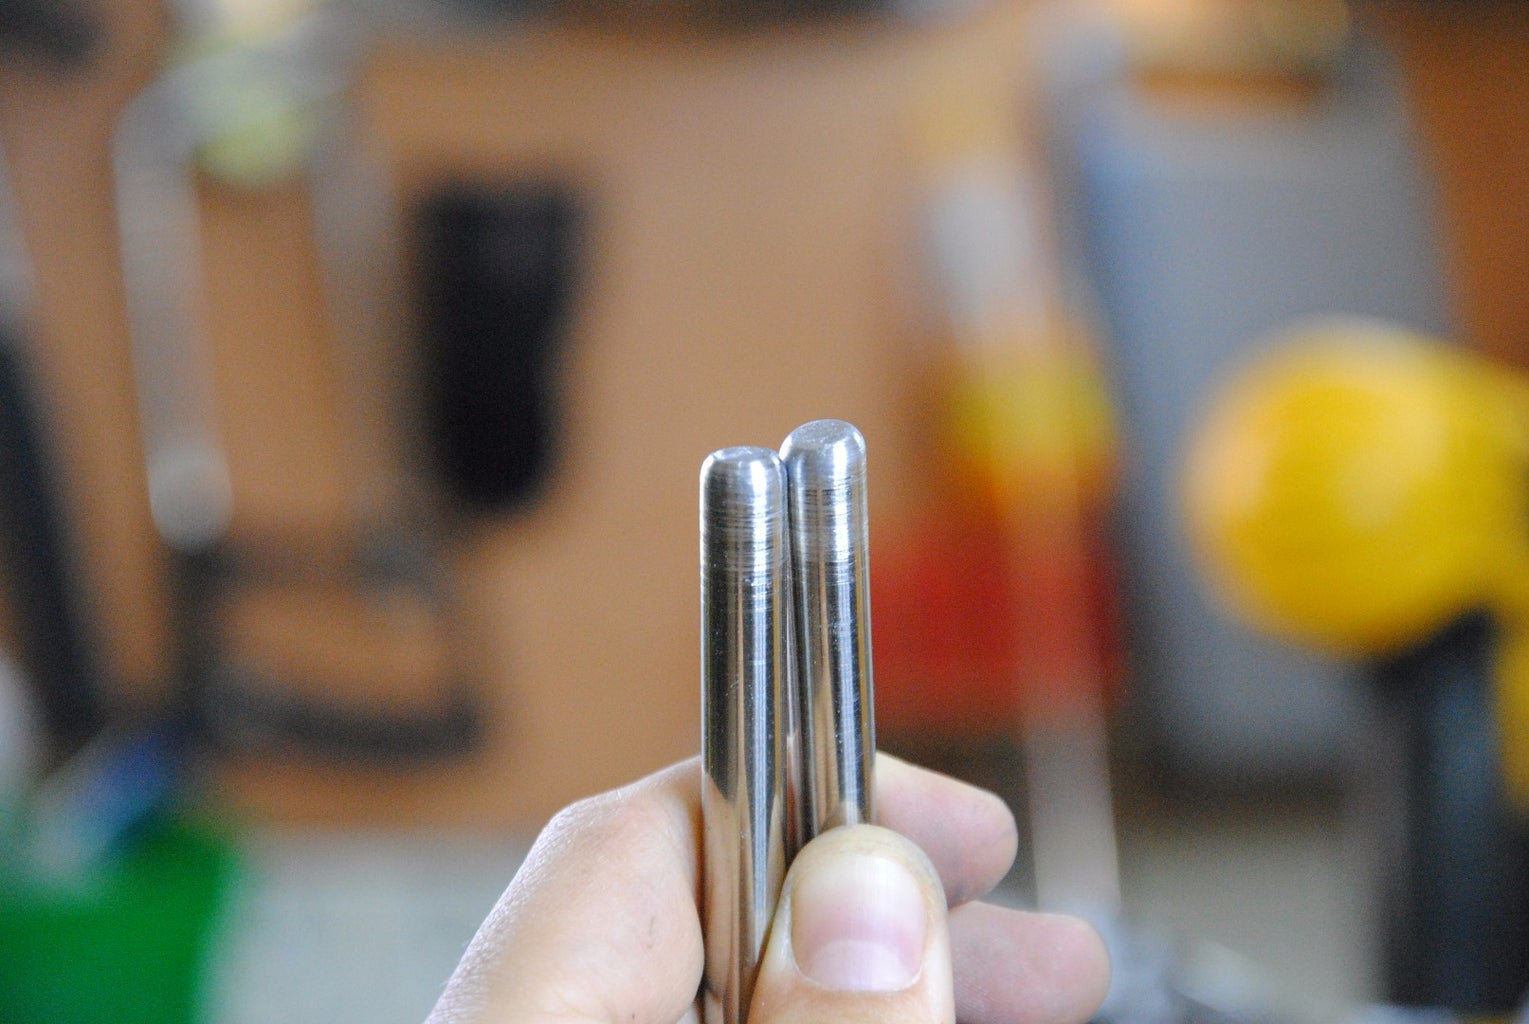 Cutting & Shaping the Support Rods